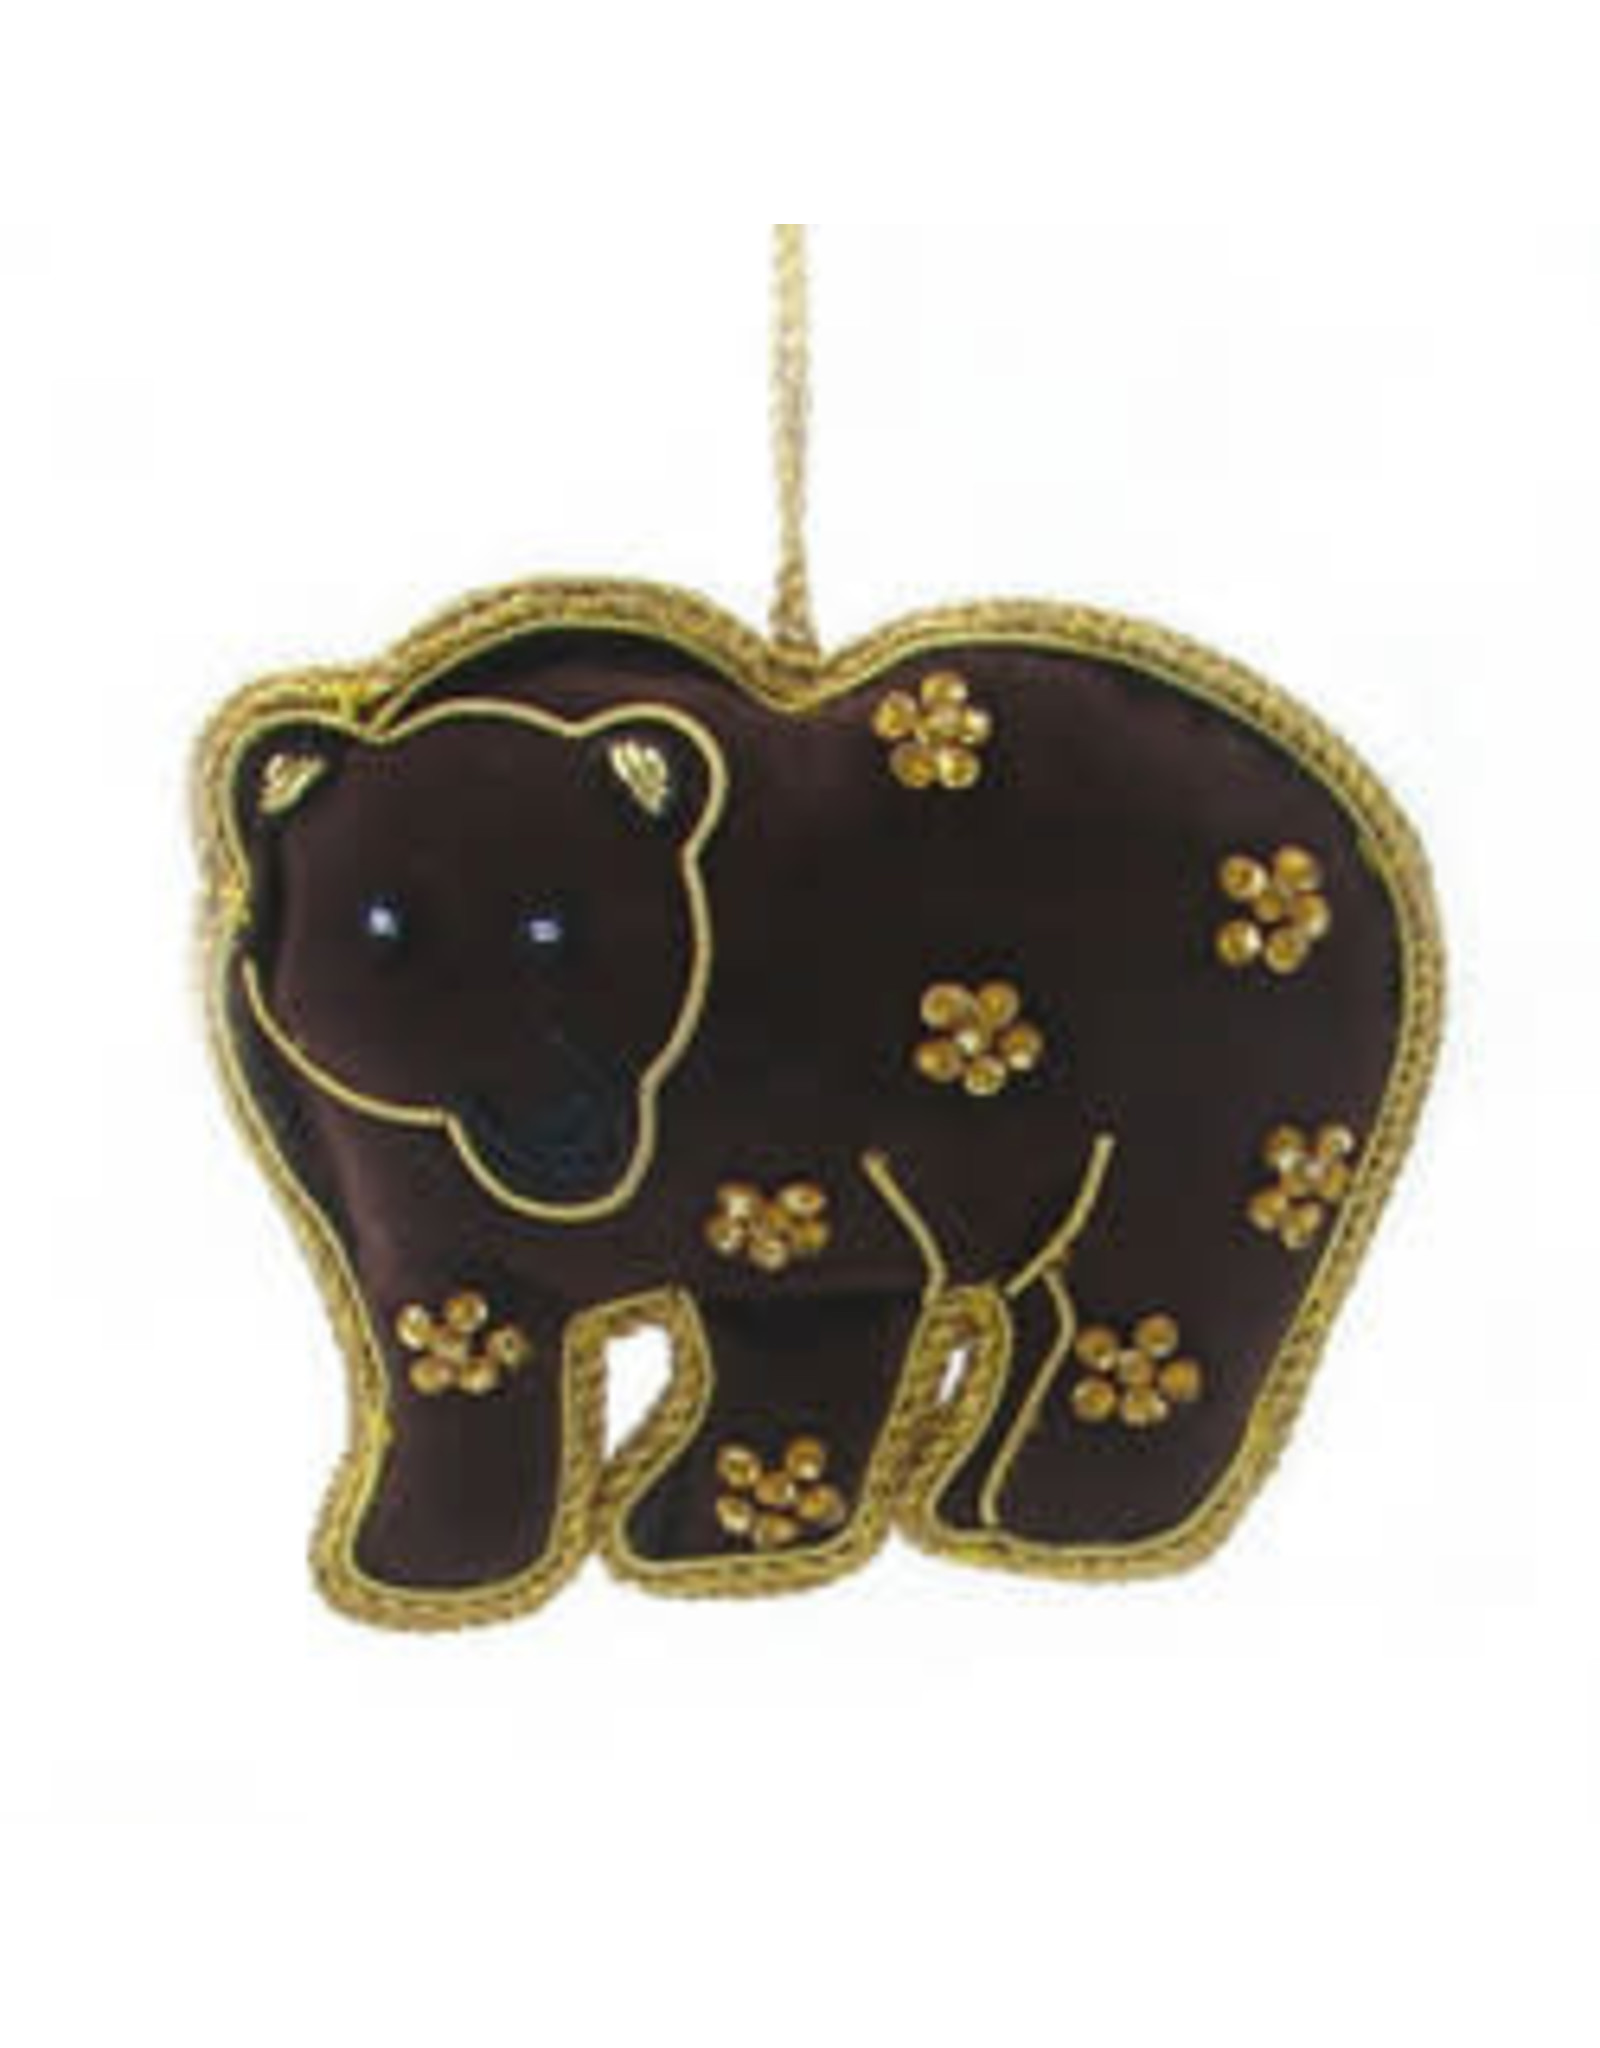 Brown Bear Ornament, India